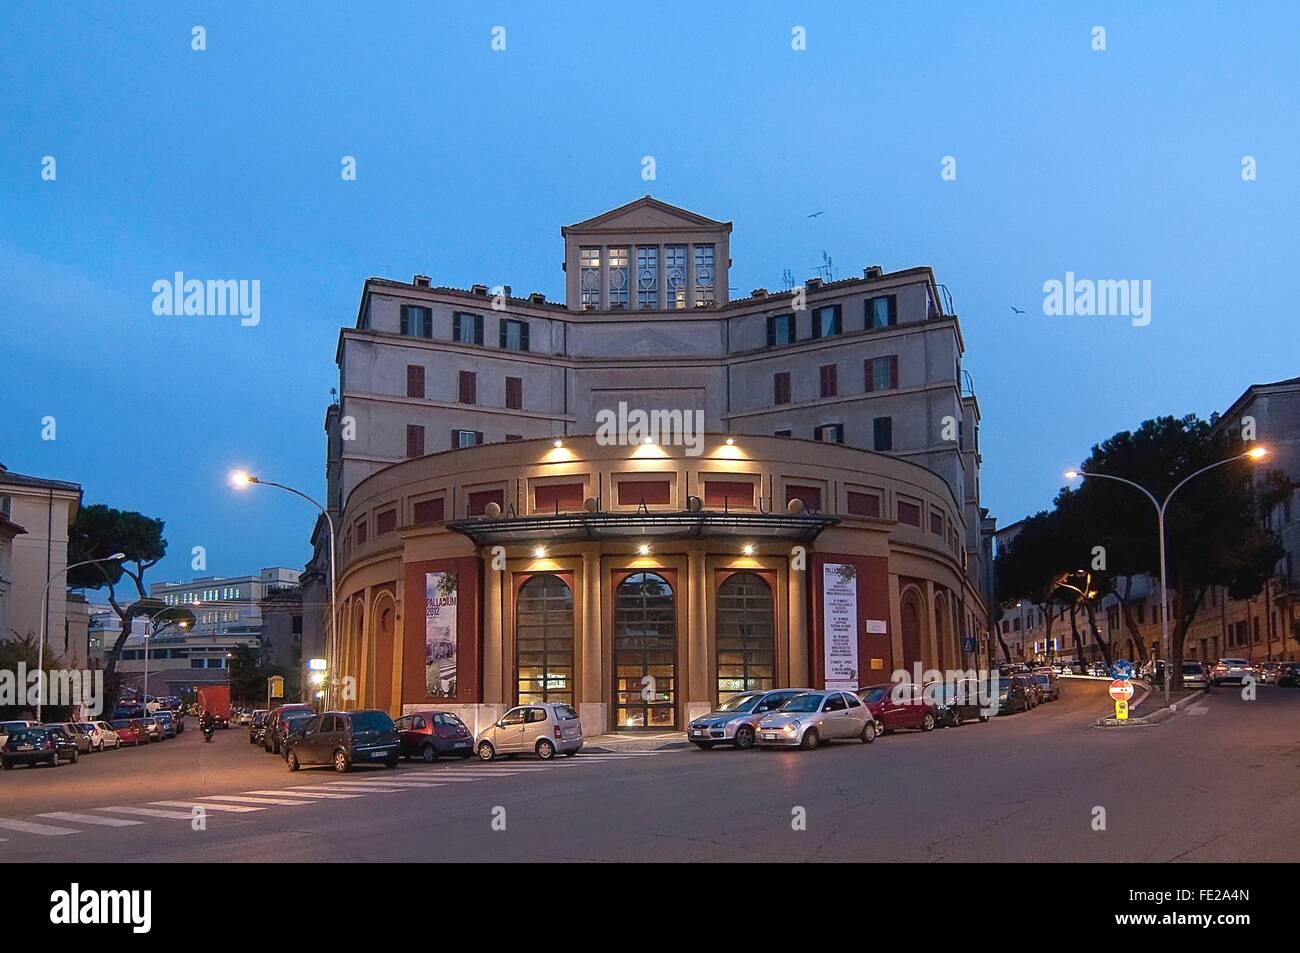 Das Gebäude in Garbatella, Rom, Italien Kredit © Fabio Mazzarella/Sintesi/Alamy Stock Photo Palladium Stockbild